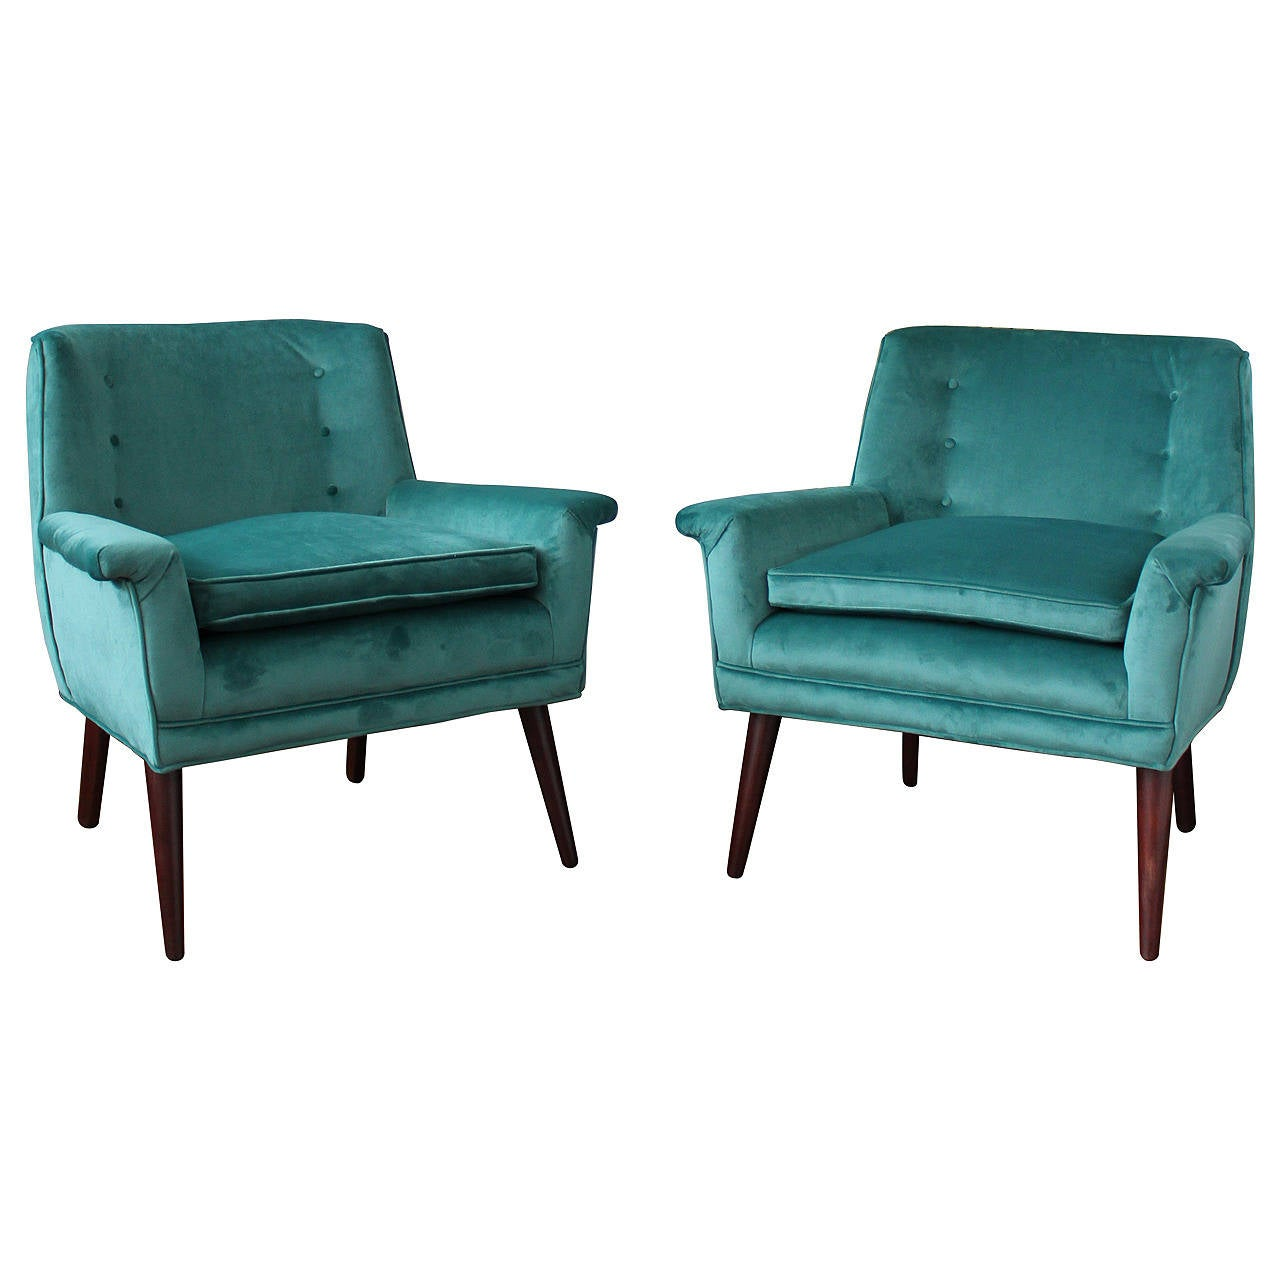 teal lounge chair summer infant portable high exceptional pair of paul mccobb style chairs in